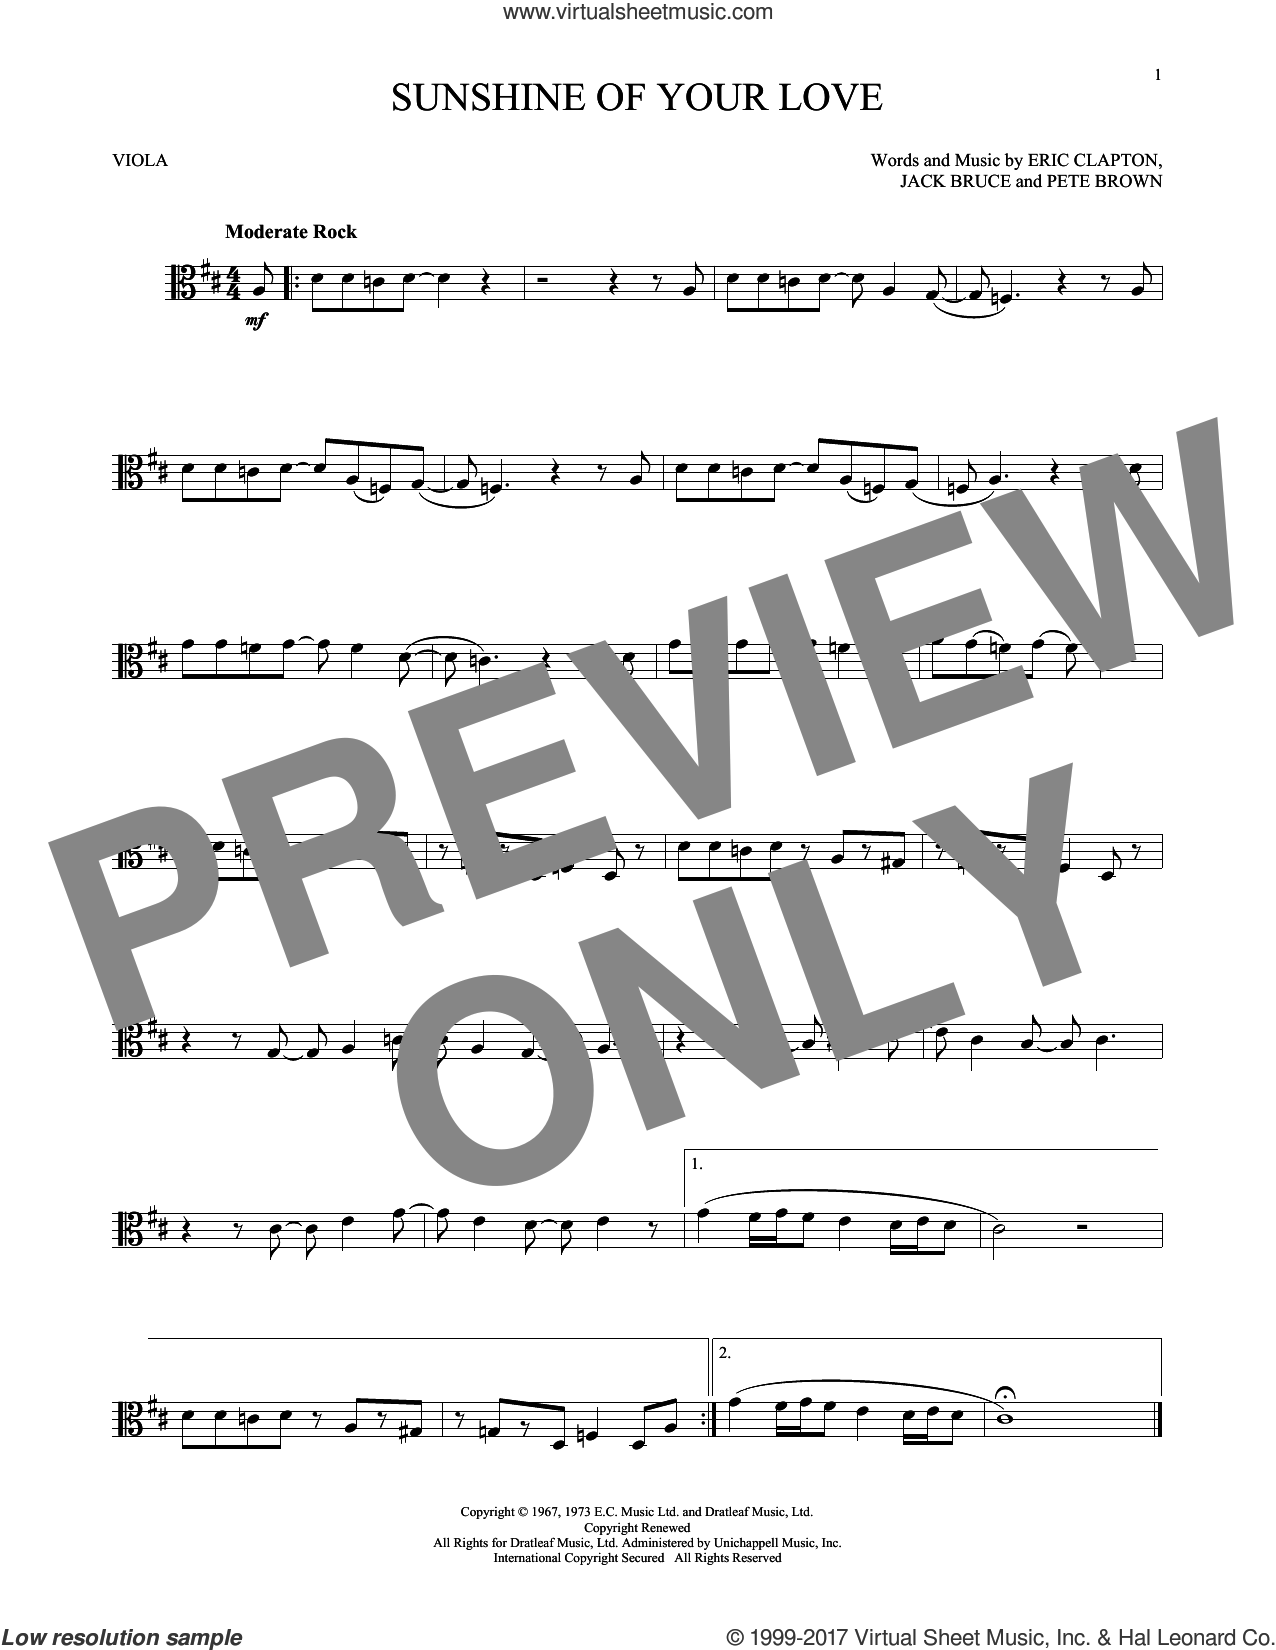 Sunshine Of Your Love sheet music for viola solo by Cream, Eric Clapton, Jack Bruce and Pete Brown, intermediate skill level